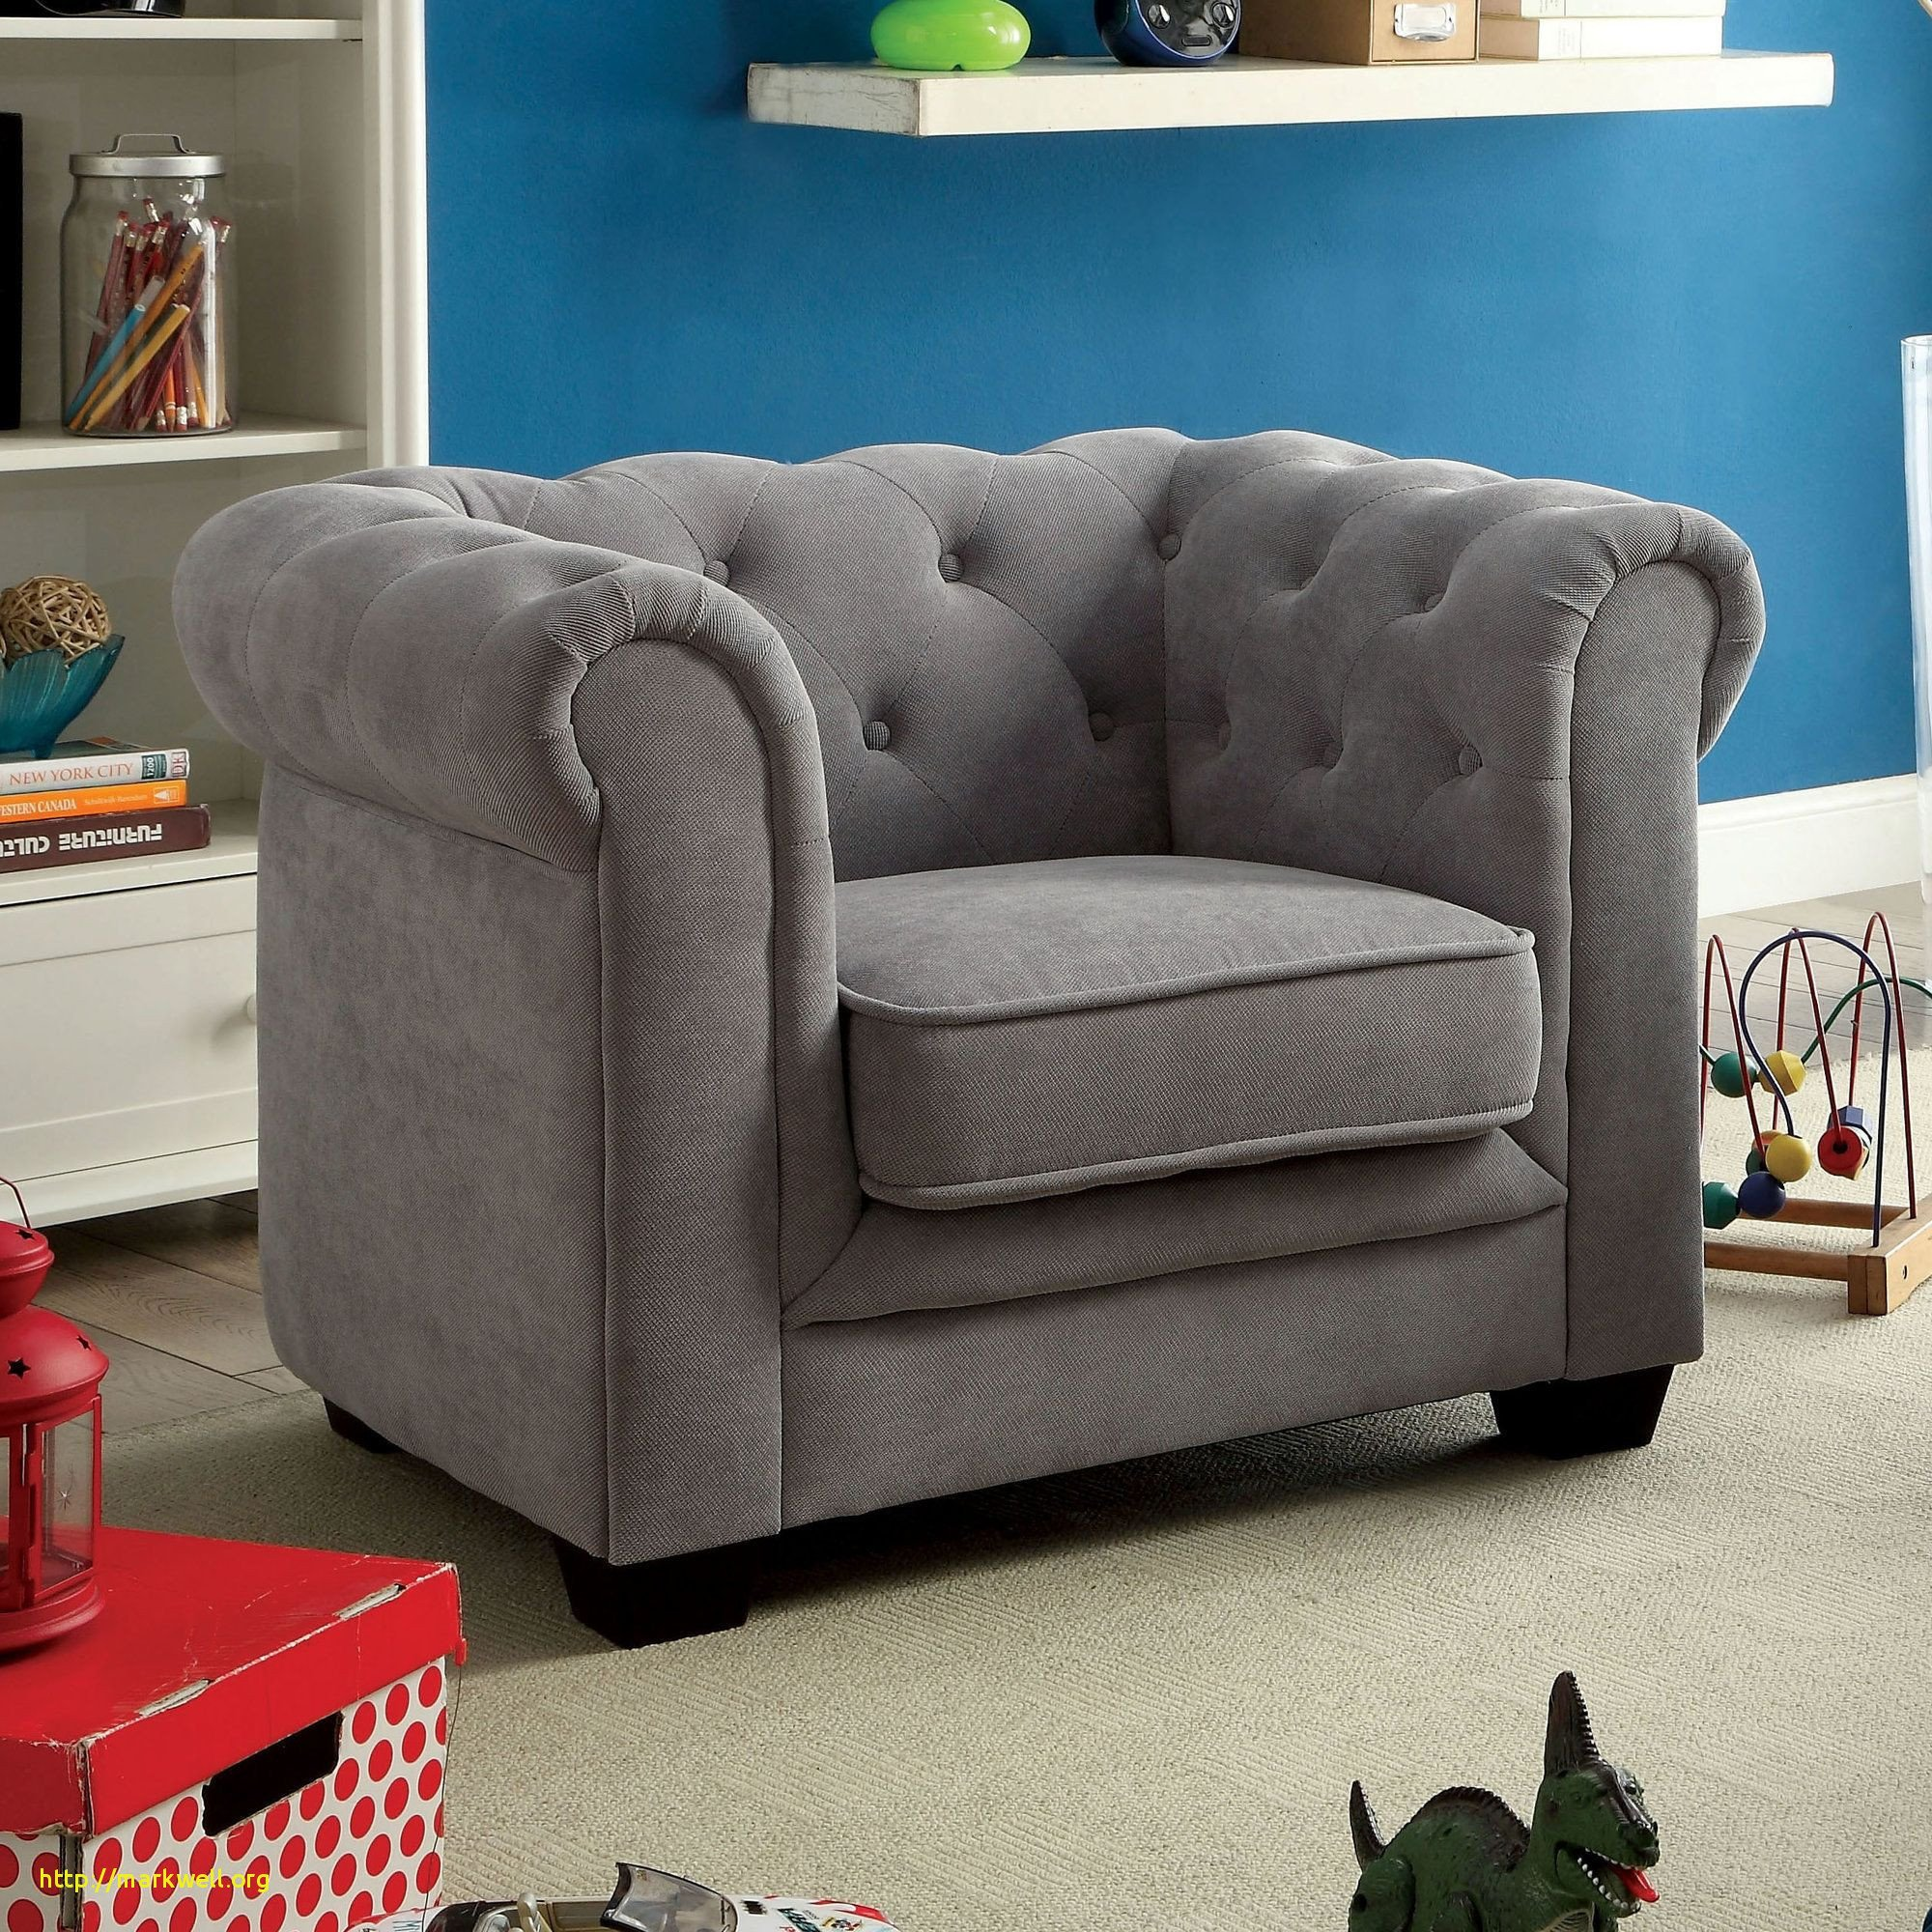 Comfy Chair for Bedroom Inspirational Awesome Fy Reading Chairs